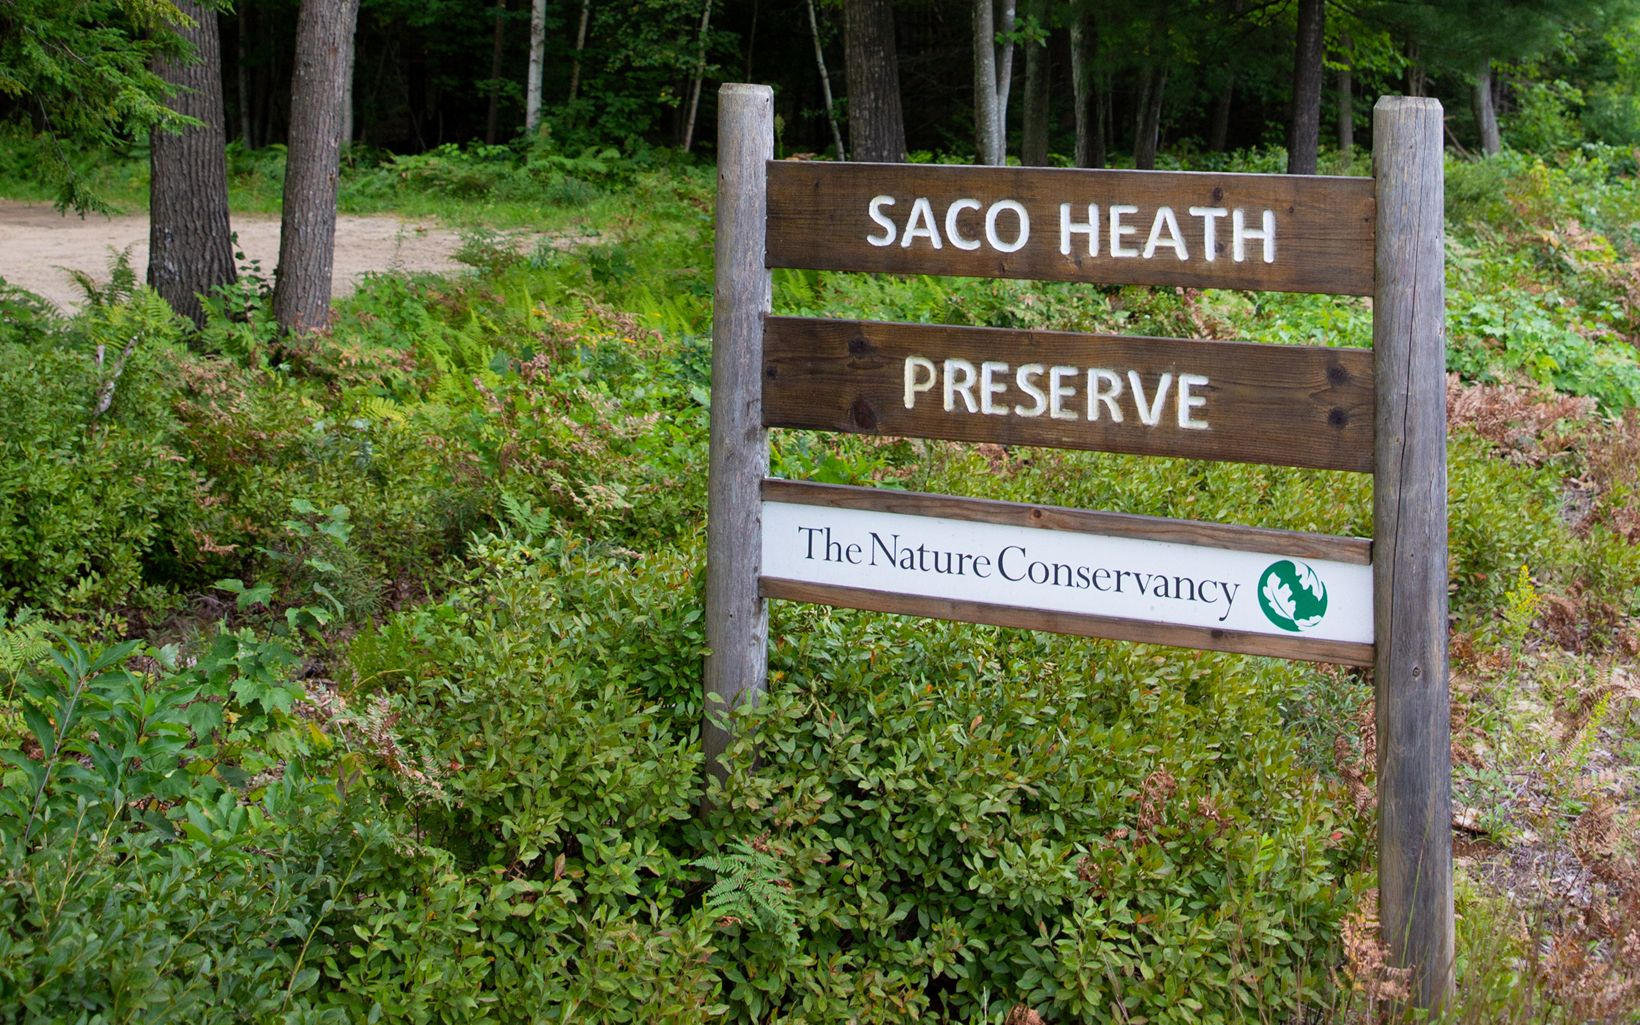 Road sign says Saco Heath and The nature Conservancy